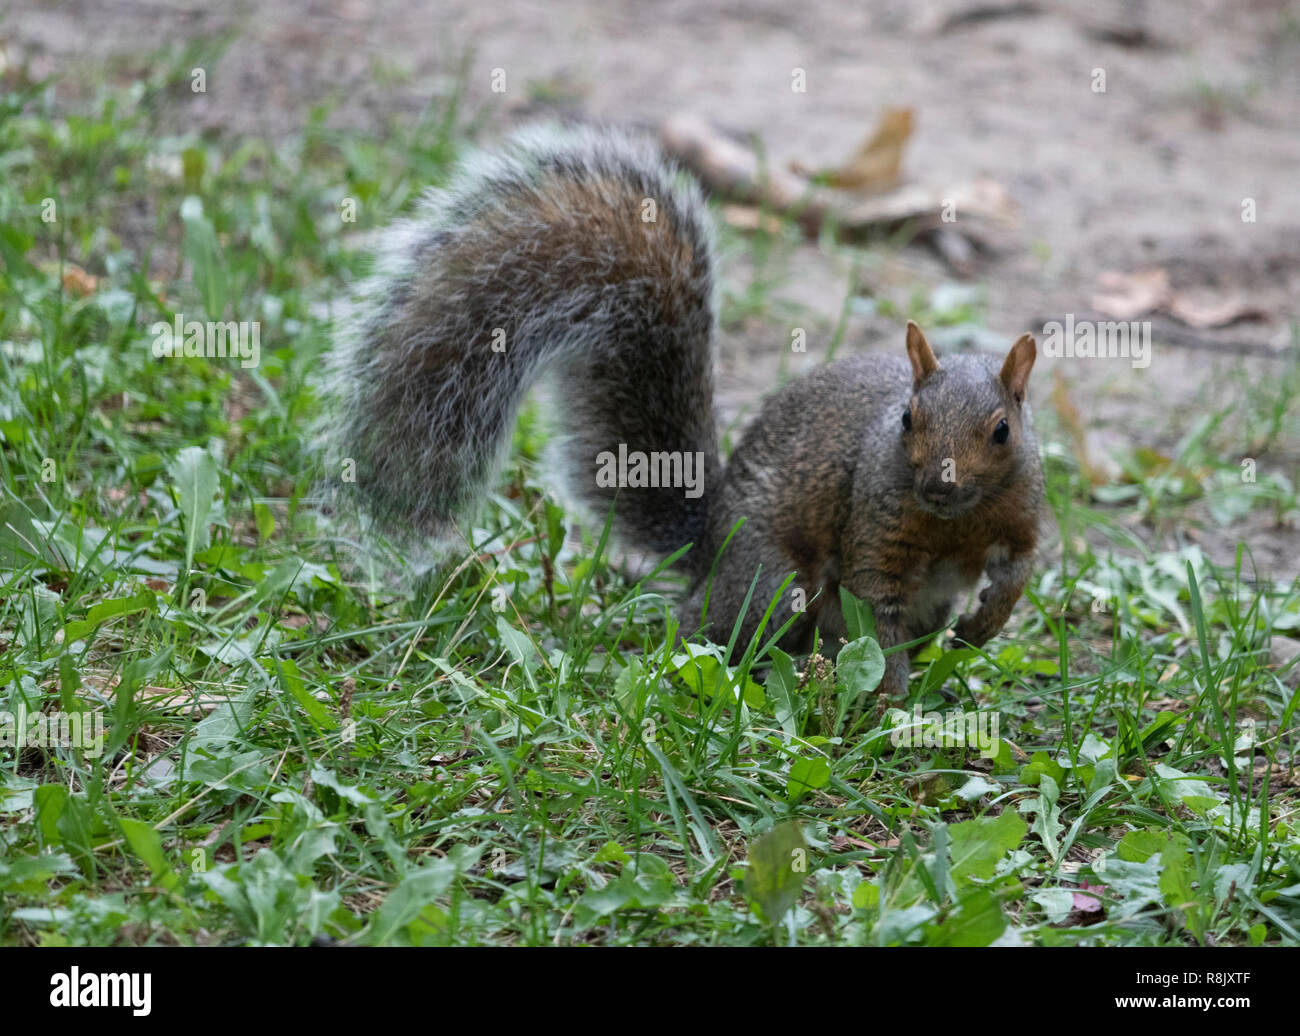 smart squirrel with big tail poses in Montreal park without fear Stock Photo